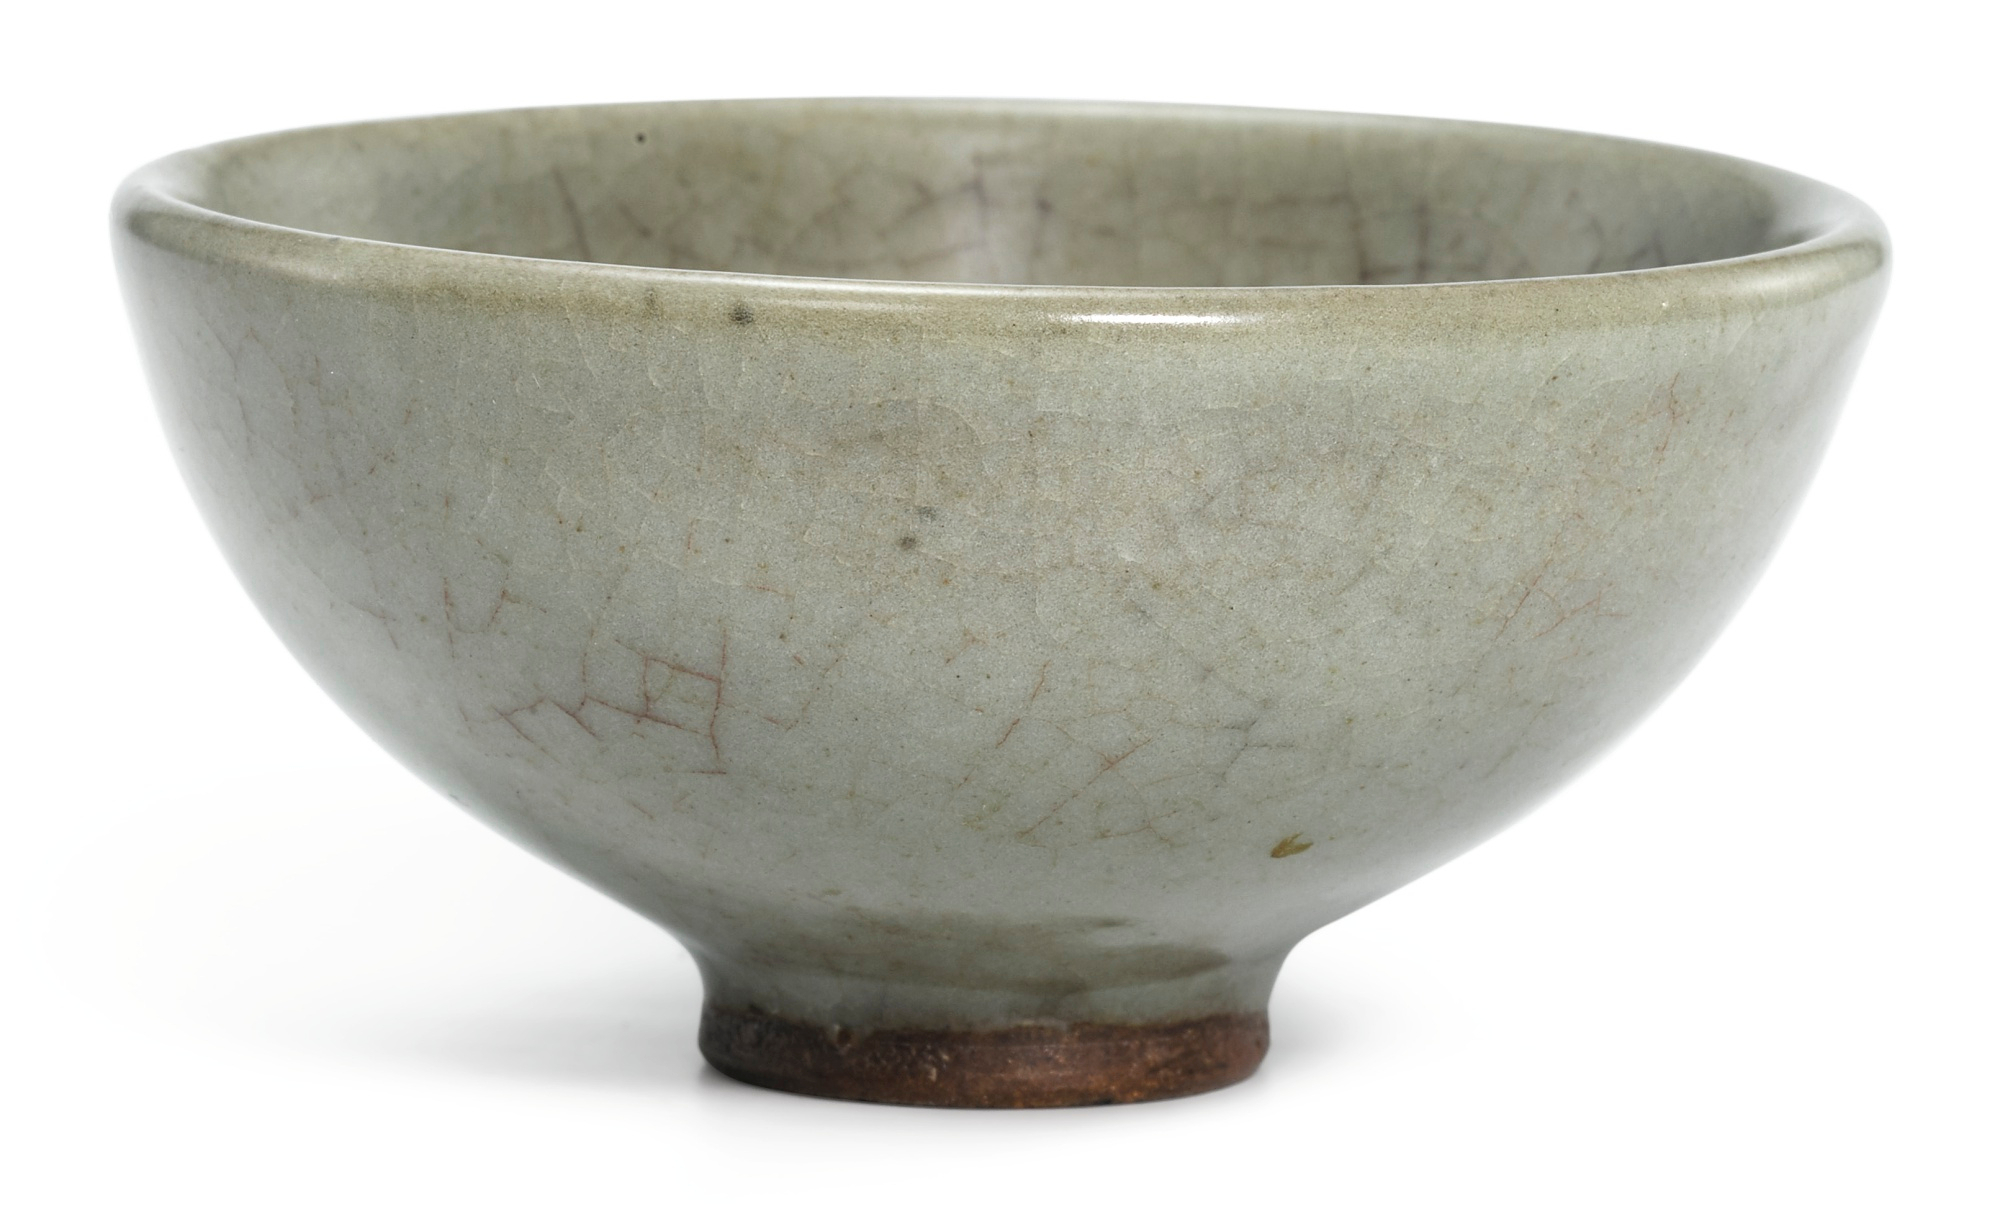 A small Junyao cup, Jin dynasty (1115-1234)